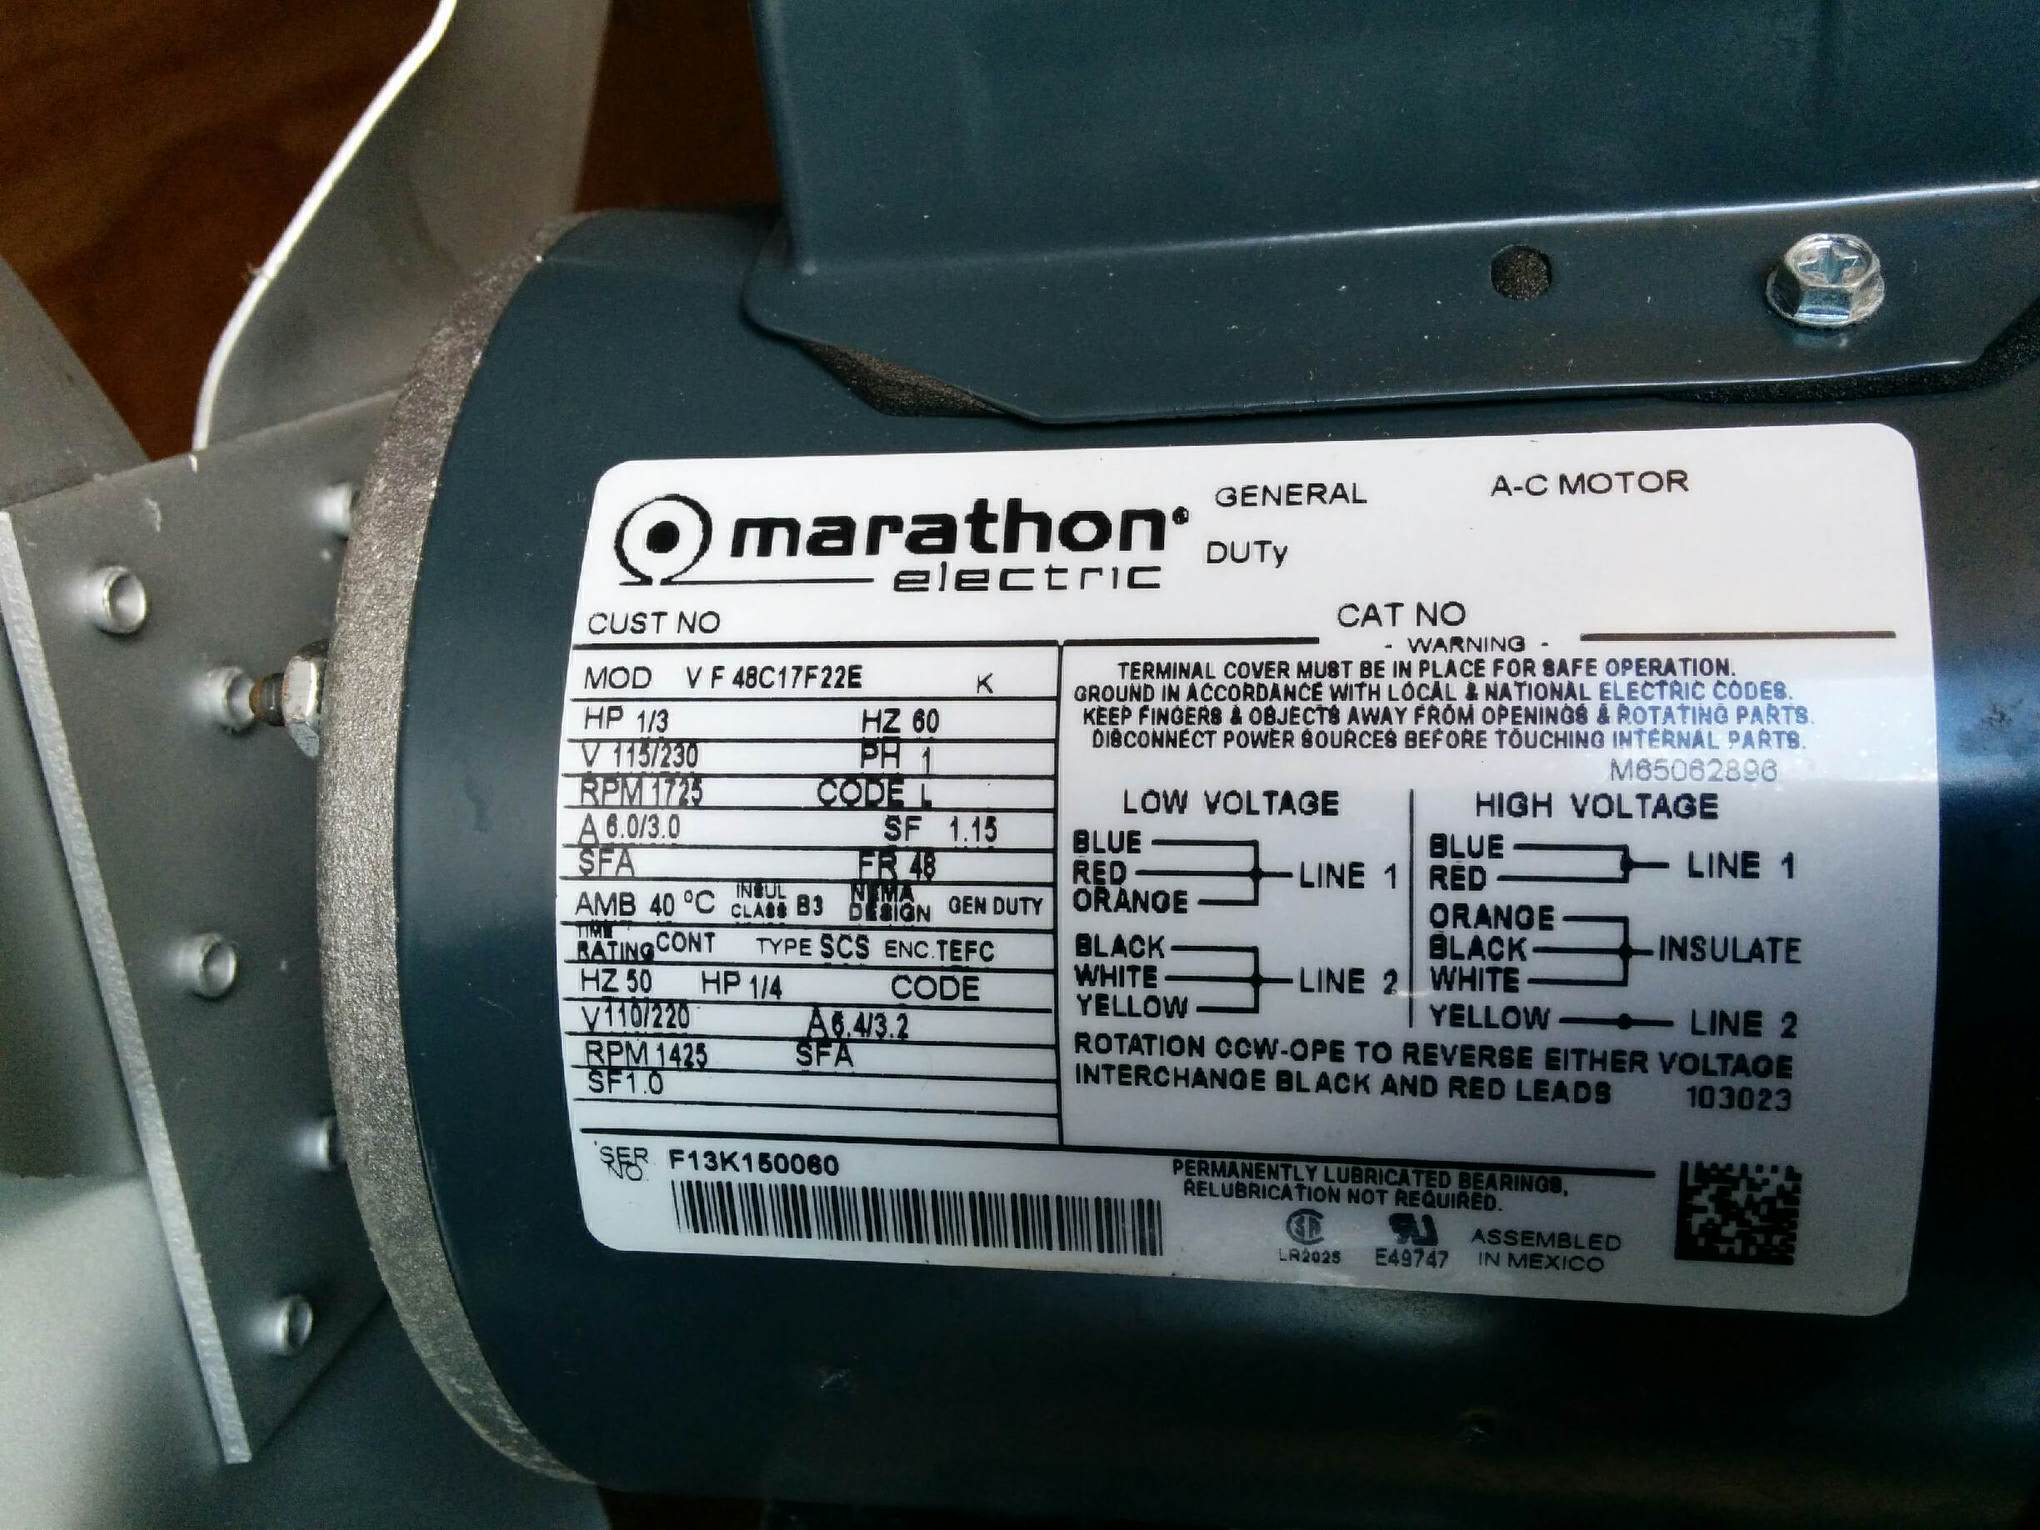 I have a Marathon Electric motor 1 3 HP I m trying to